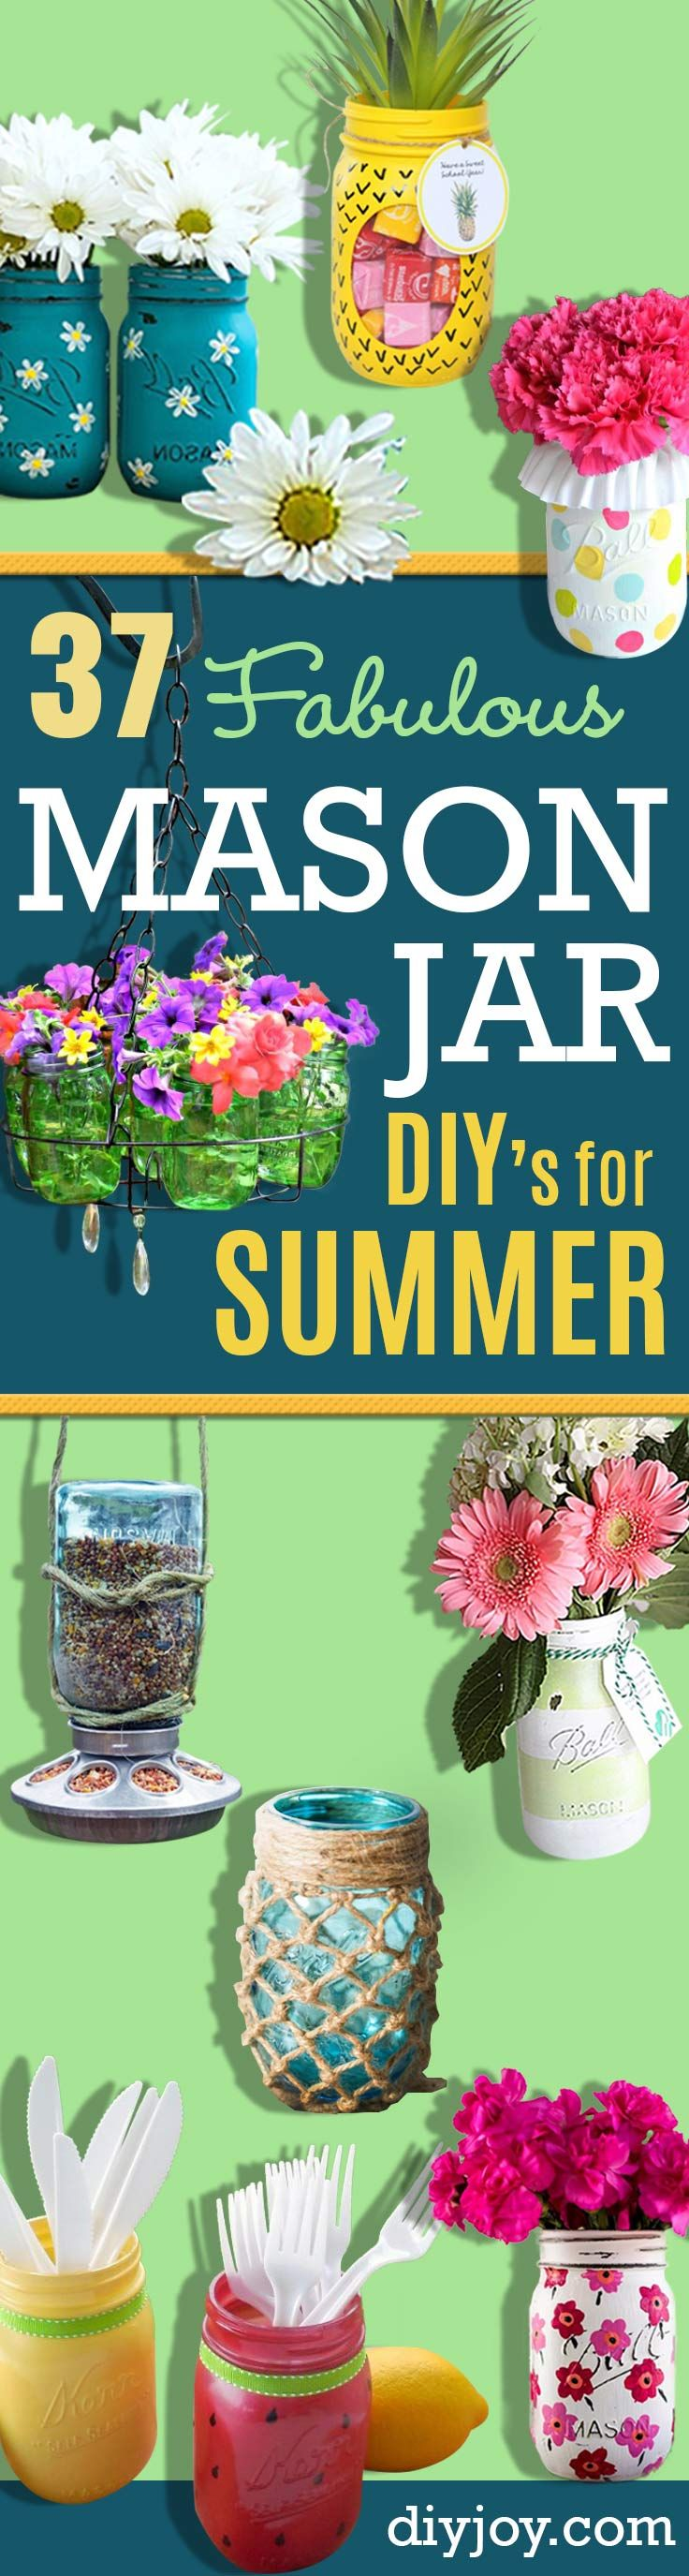 Mason Jar Ideas for Summer -  Mason Jar Crafts, Decor and Gifts, Centerpieces and DIY Projects With Jars That Are Perfect For Summertime - Fun and Easy Lights, Cool Vases, Creative 4th of July Ideas http://diyjoy.com/mason-jar-crafts-summer